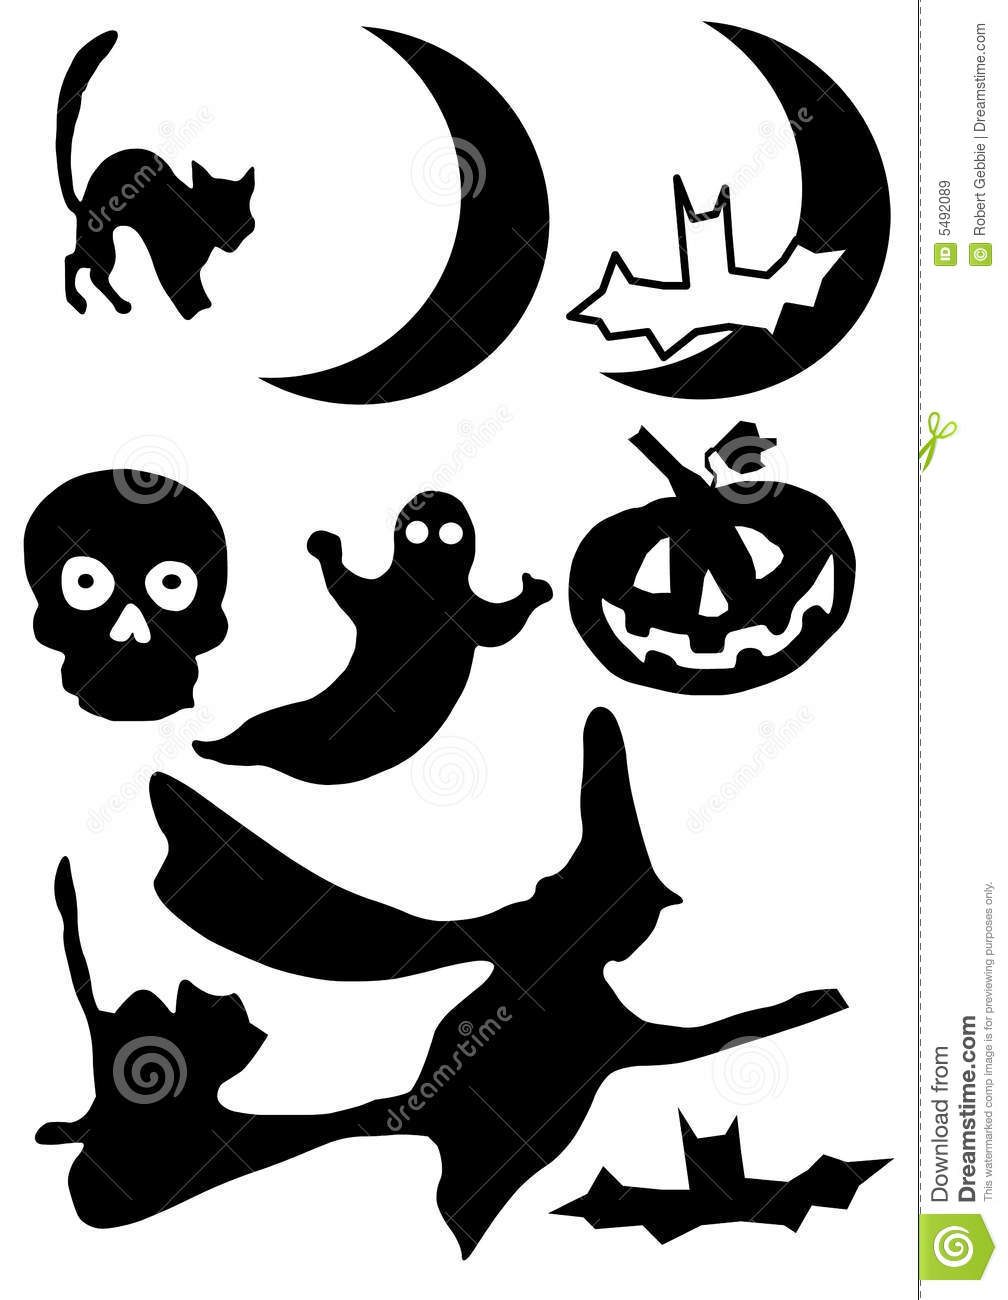 Halloween Silhouette Royalty Free Stock Images.